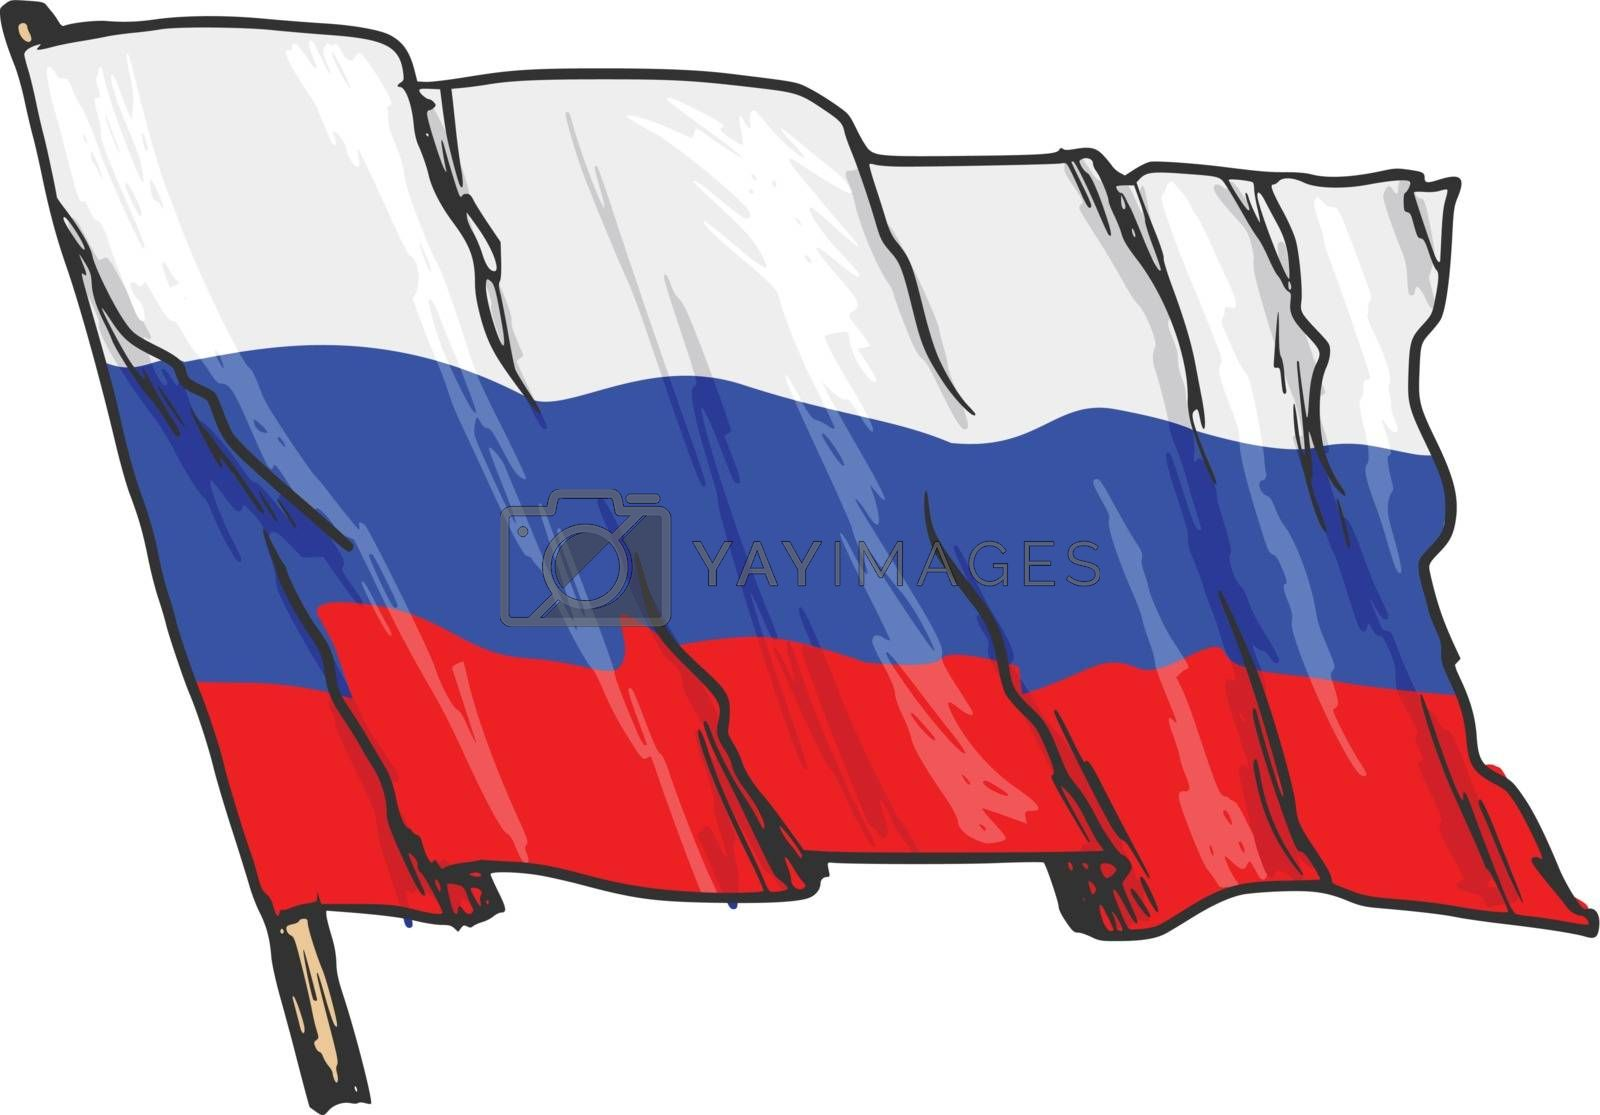 hand drawn, sketch, illustration of flag of Russia